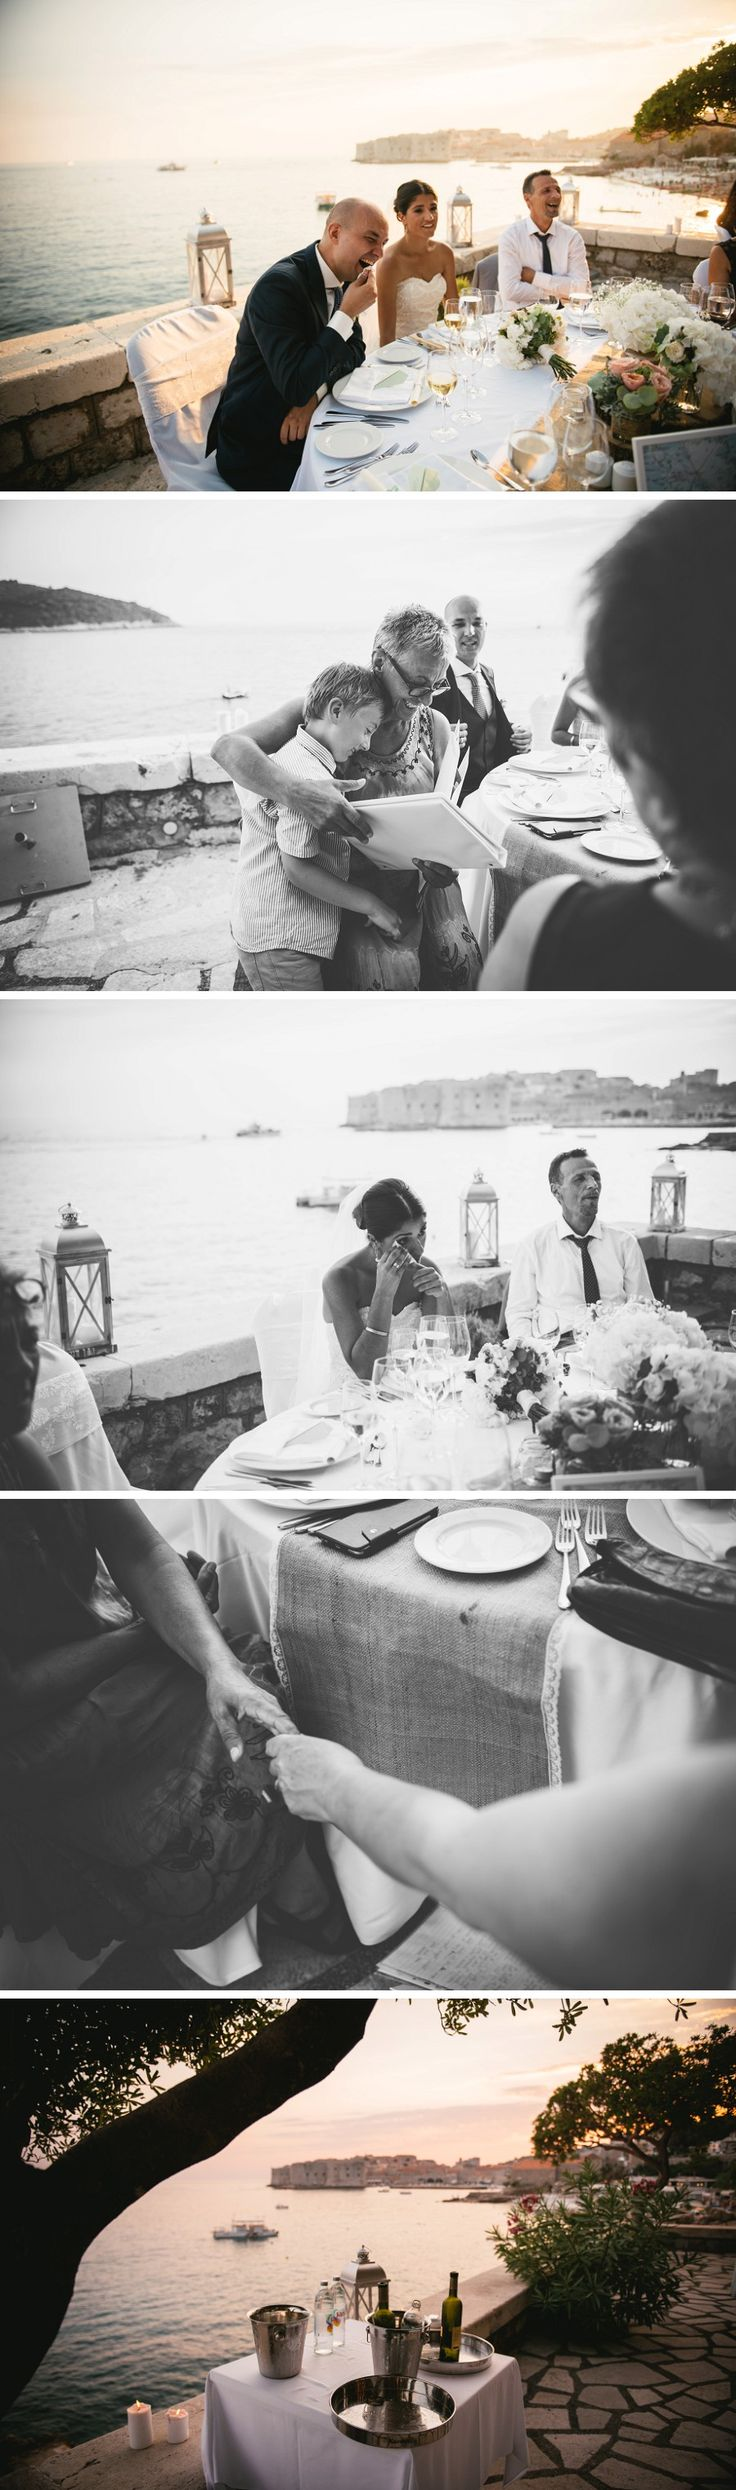 Wedding reception in the Excelsior hotel in Dubrovnik with a view on the bay and the castle - Croatia destination wedding - Zephyr & Luna photograhy